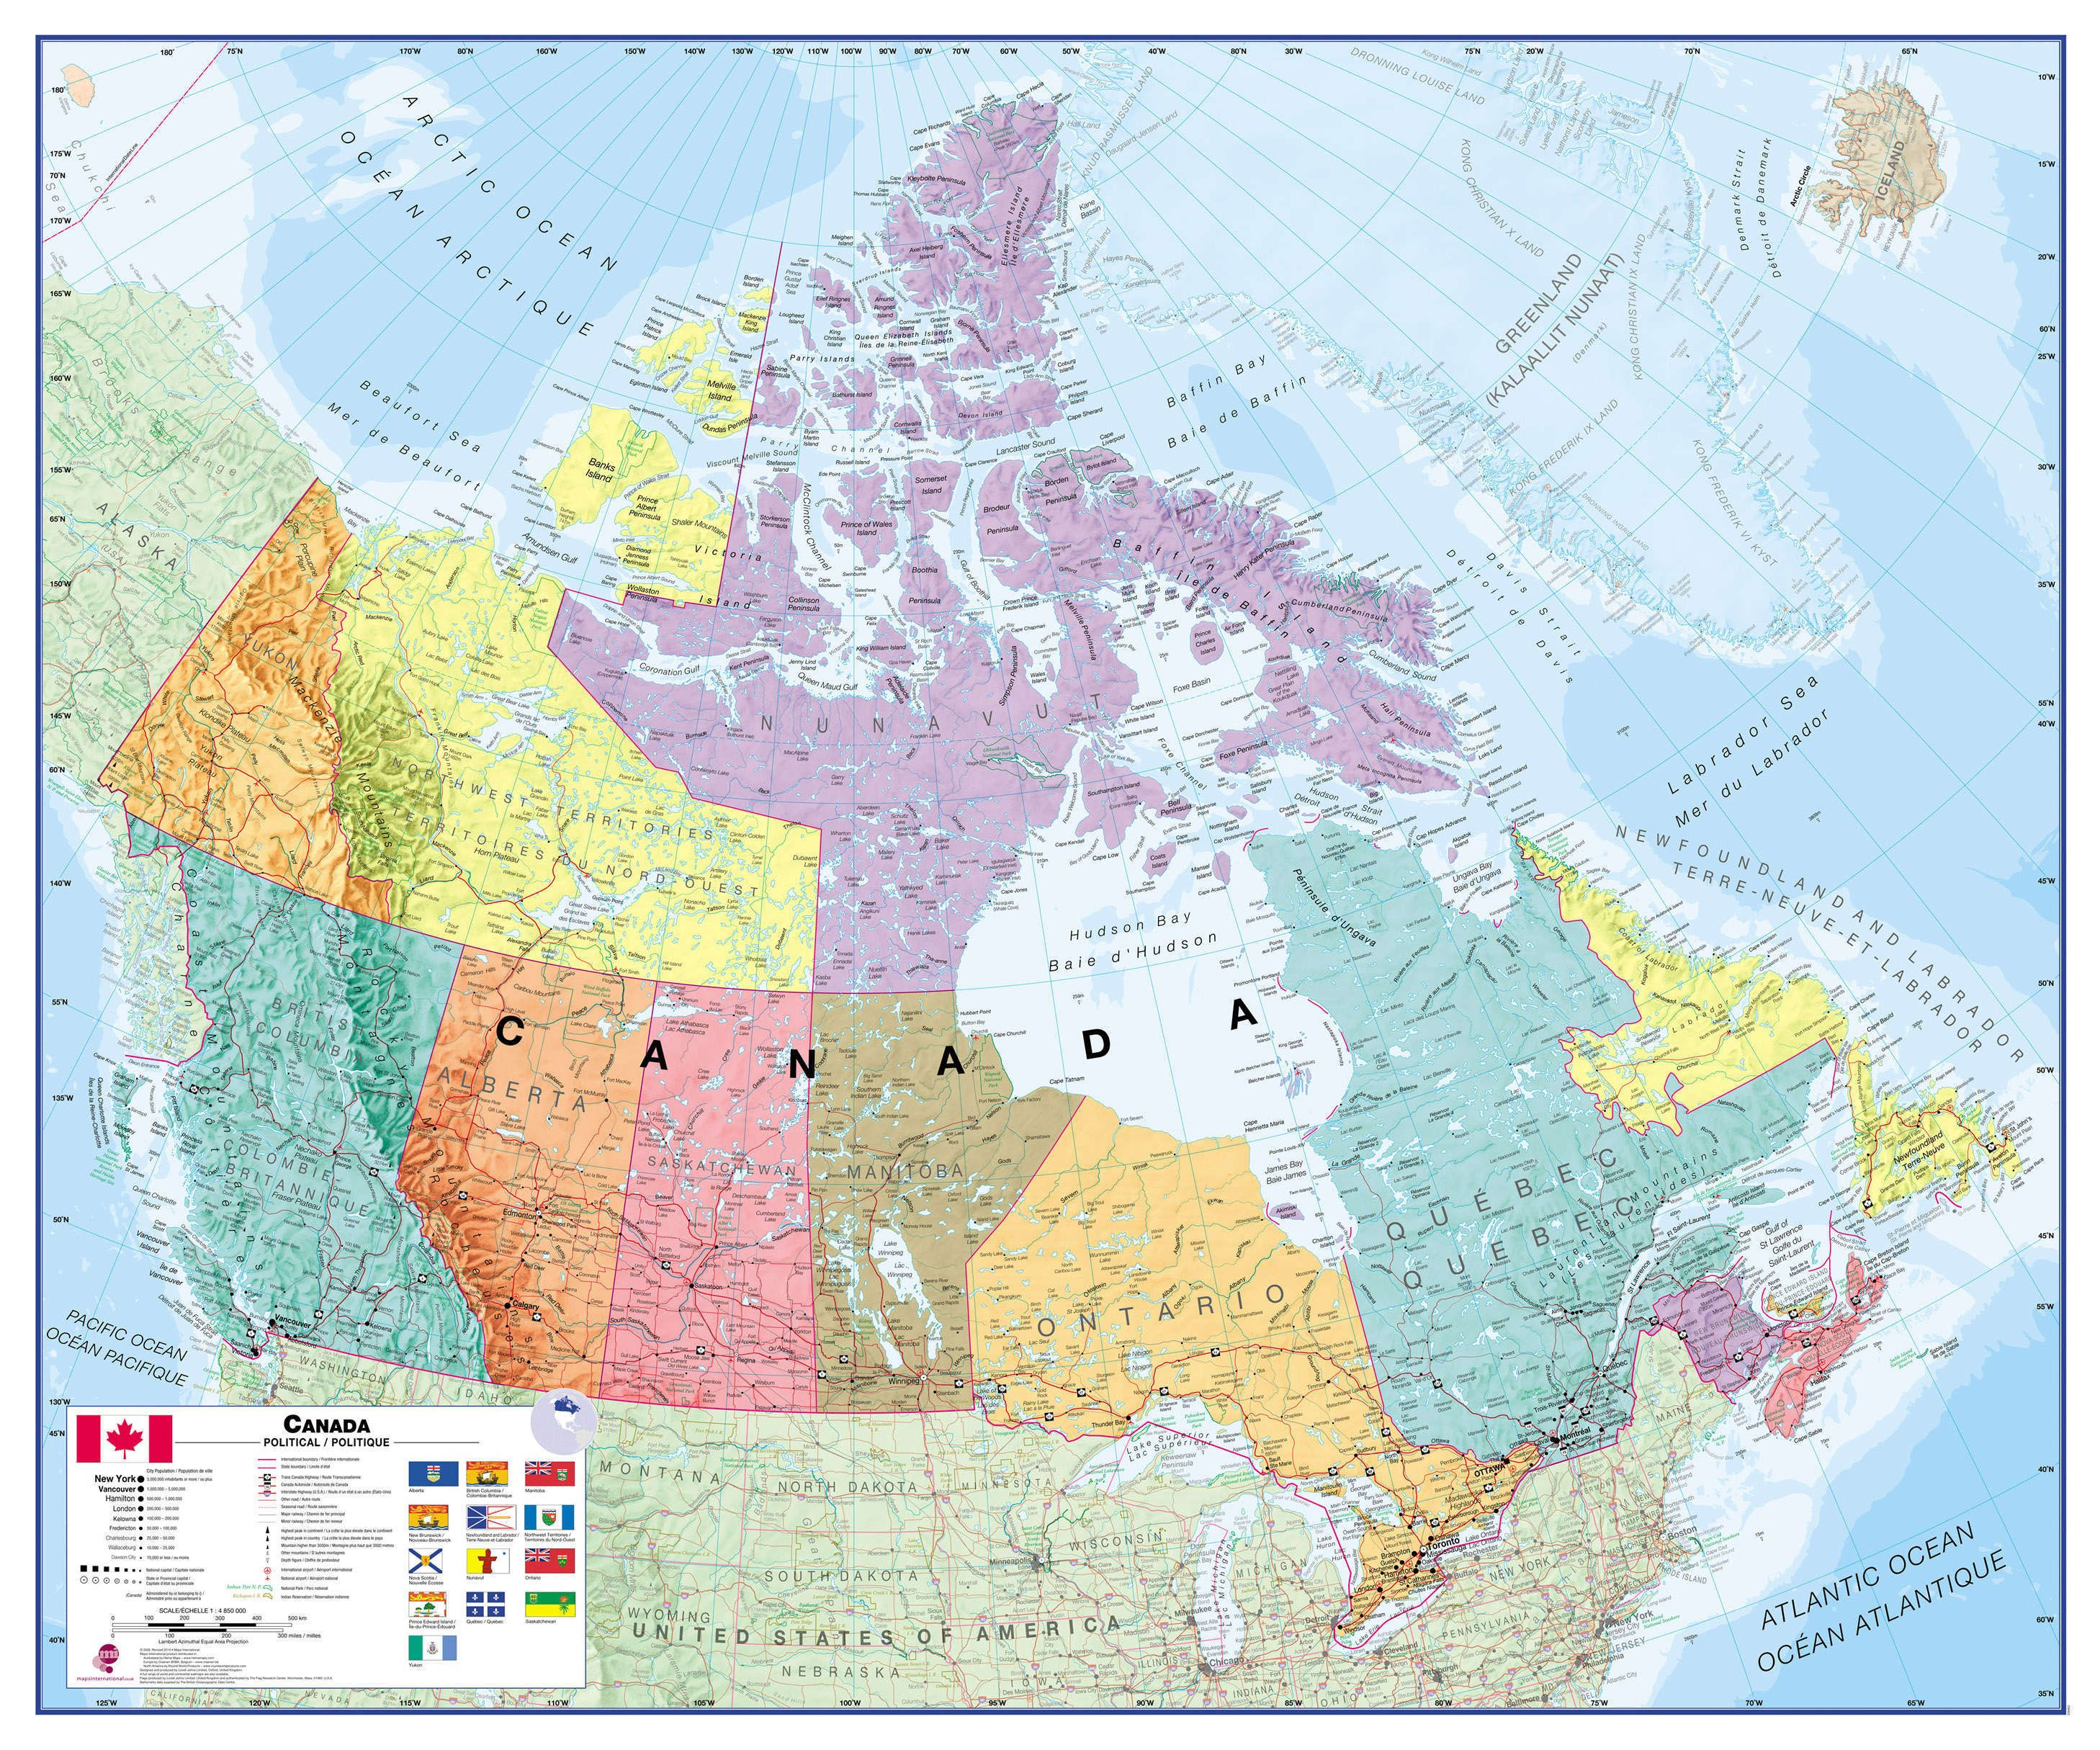 Canada Wall Map Political - The political map of canada